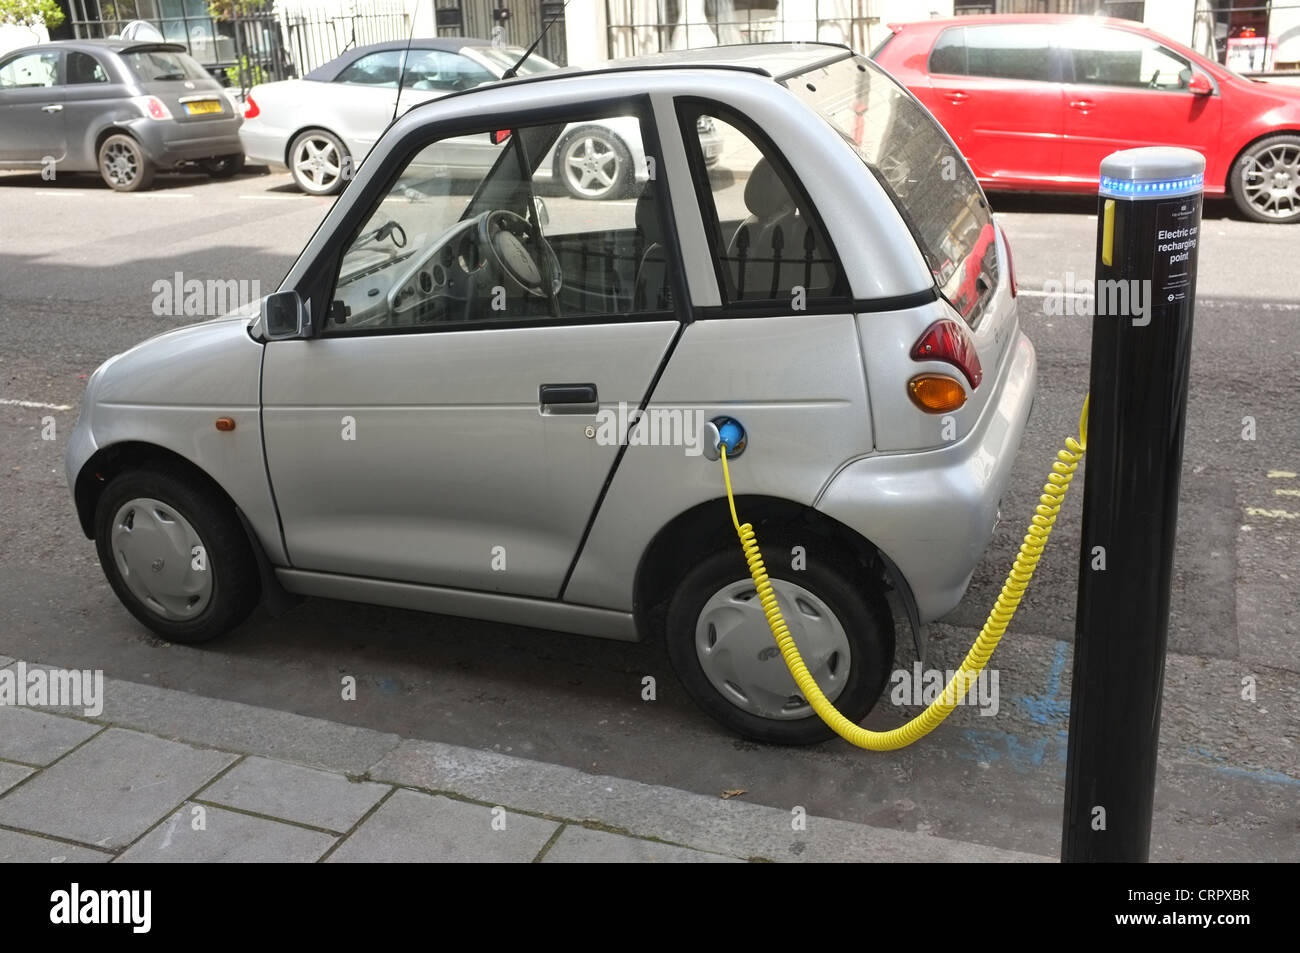 A G-Wiz electric car connected to a recharging point in Hinde Street Westminster - Stock Image